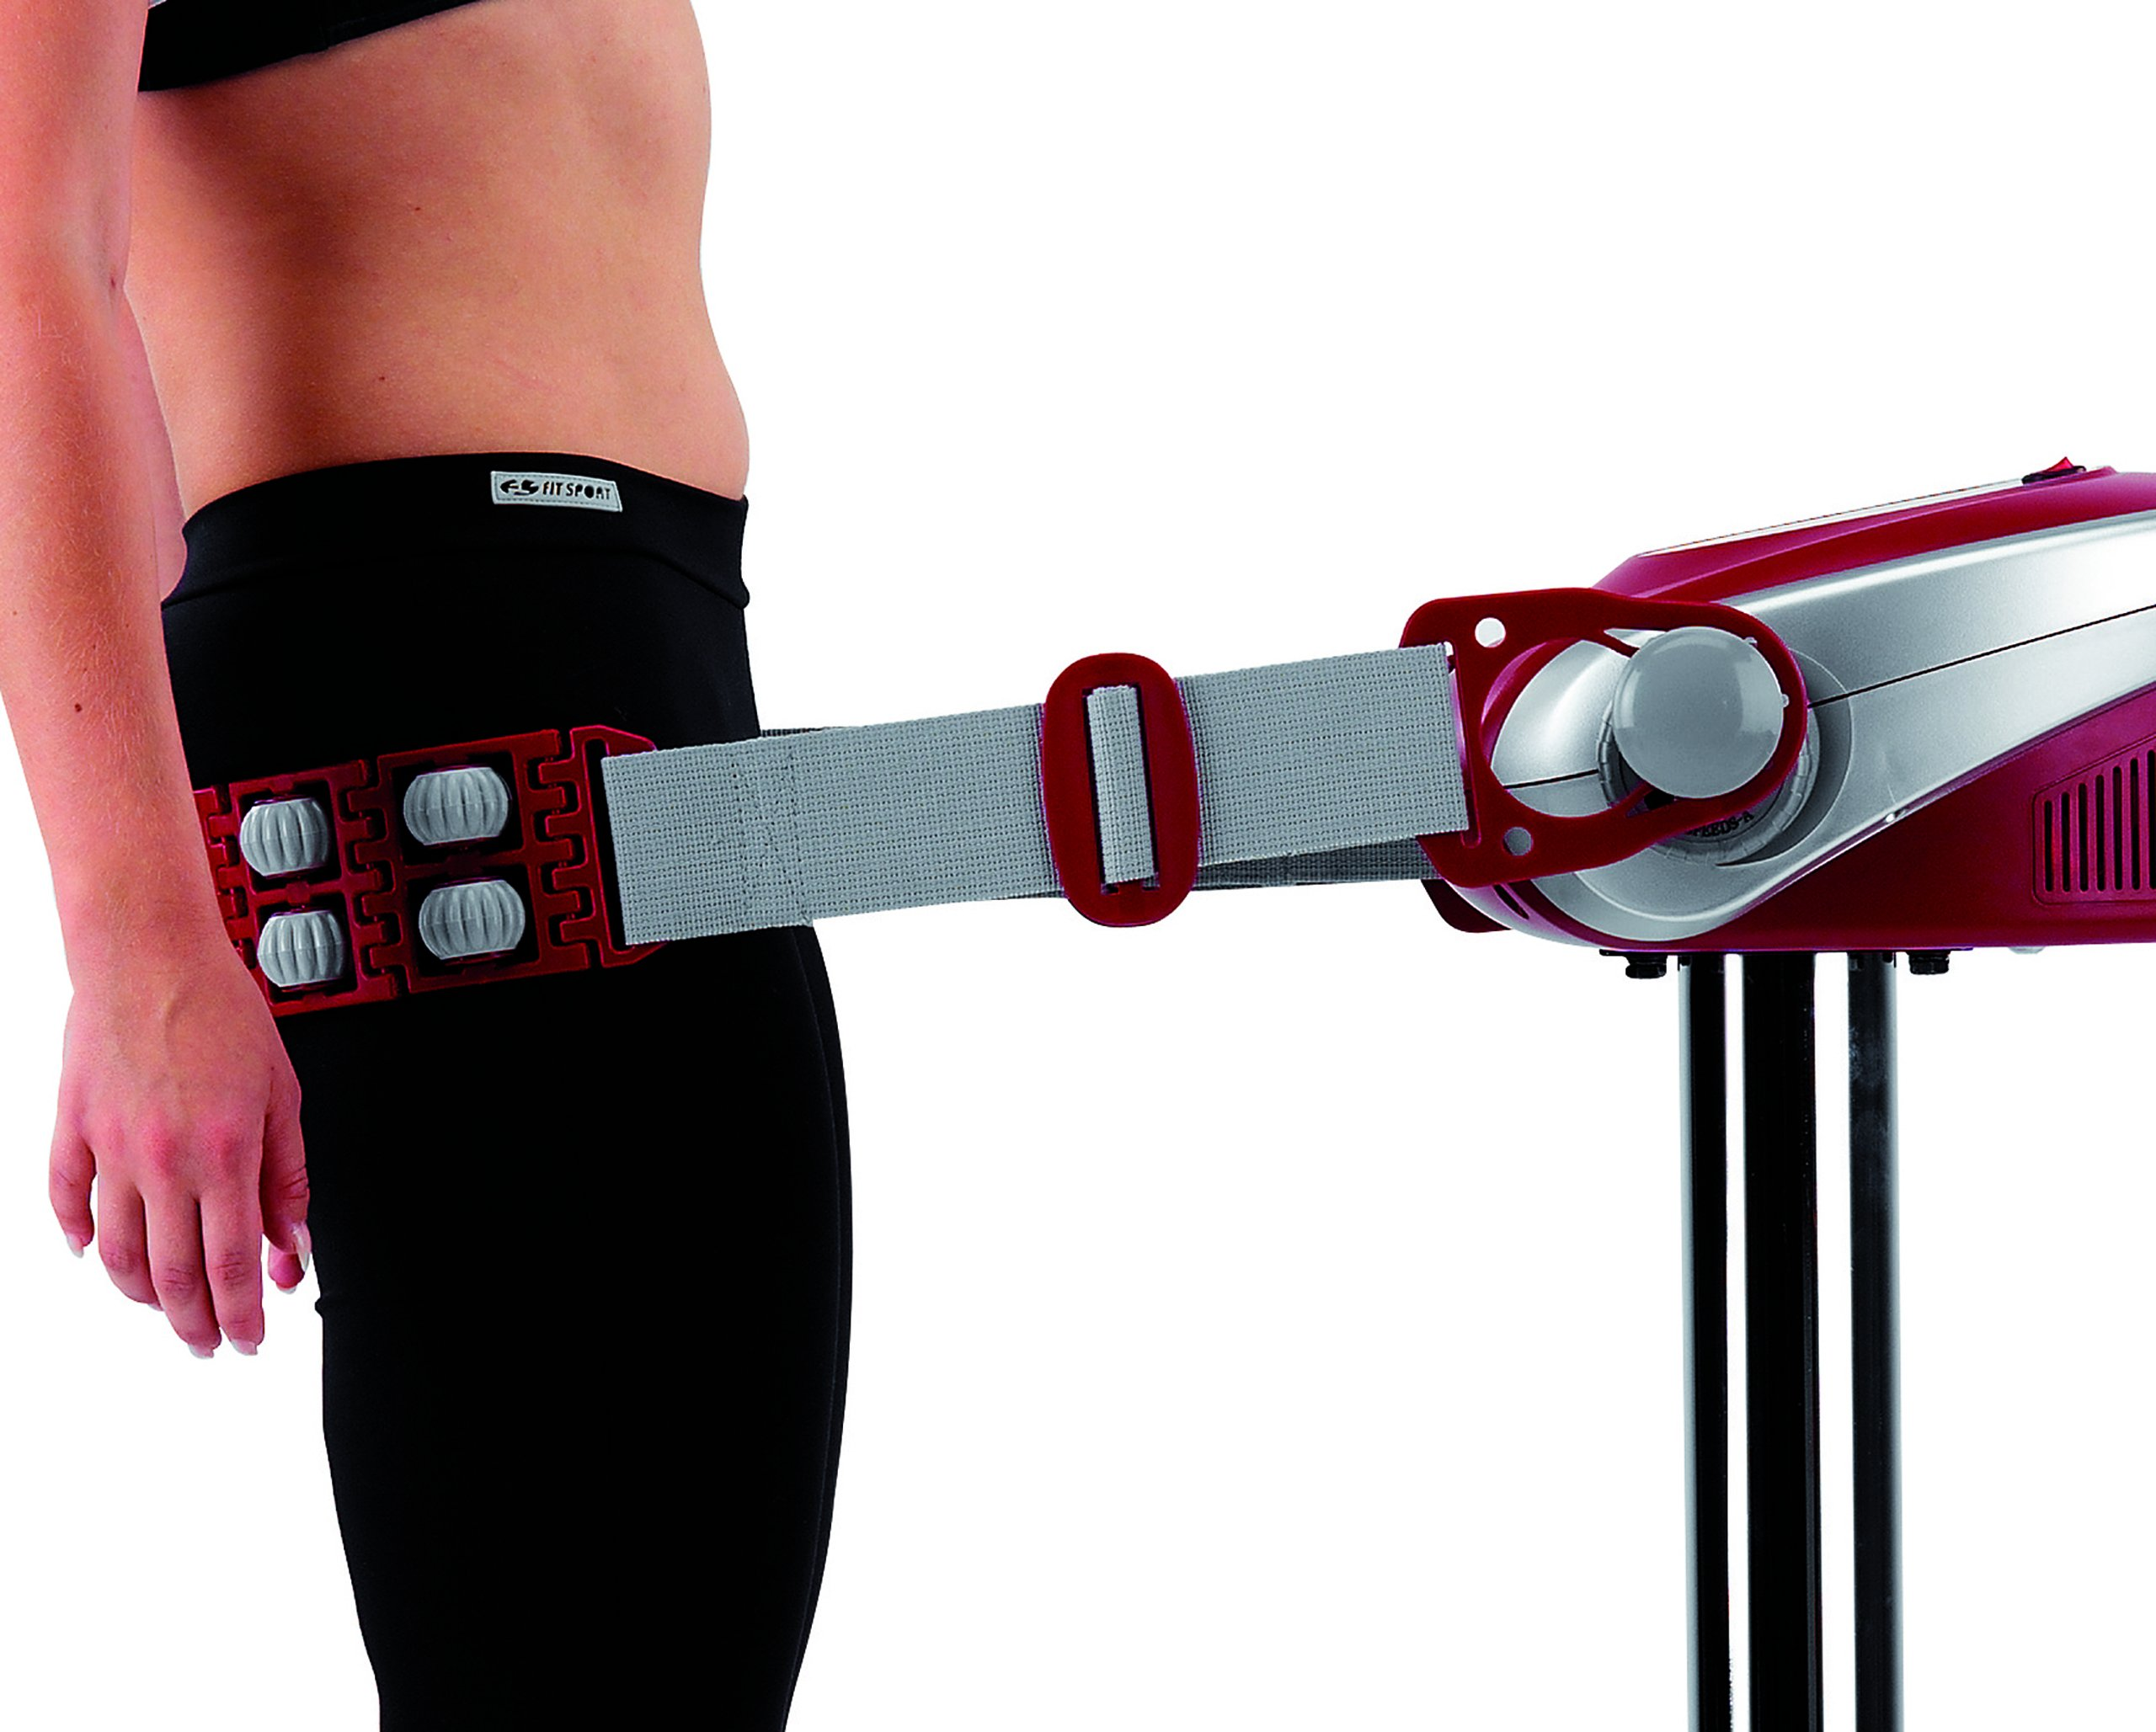 81eQmHBh0dL - BH Fitness Tactile Tonic Pro G225 Vibration belt massage machine. Relax overloaded muscles and sore joints. Ultra…